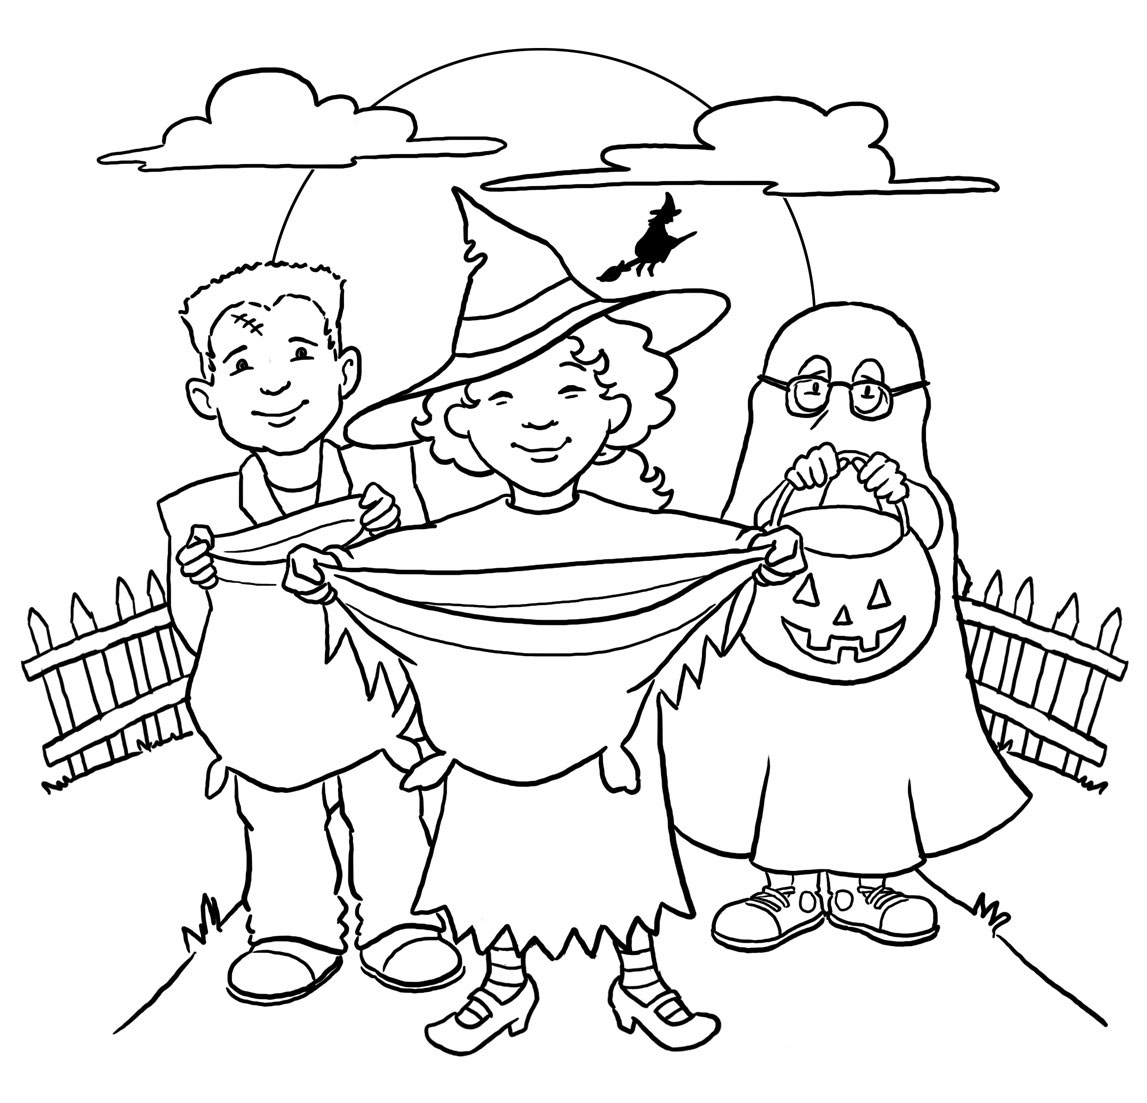 Halloween Coloring Pages Trick Or Treat Coloring Pages Trick Or Treat Coloring Page